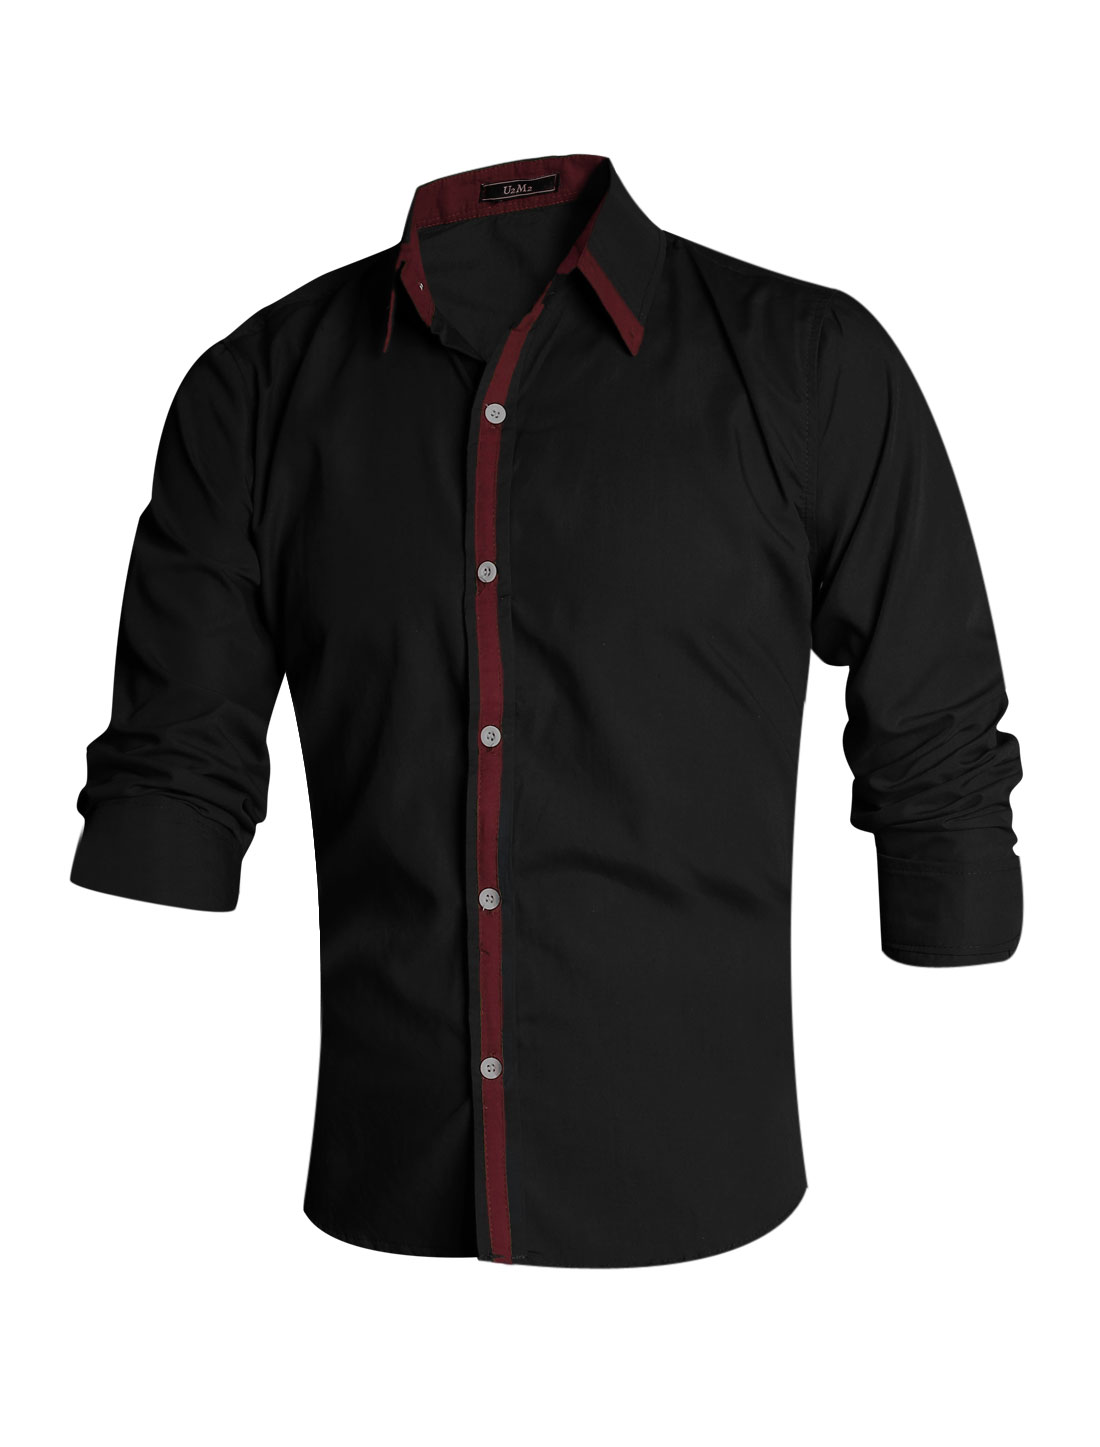 Men Black Single Breasted Slim Fit Contrast Color Detail Leisure Shirt M